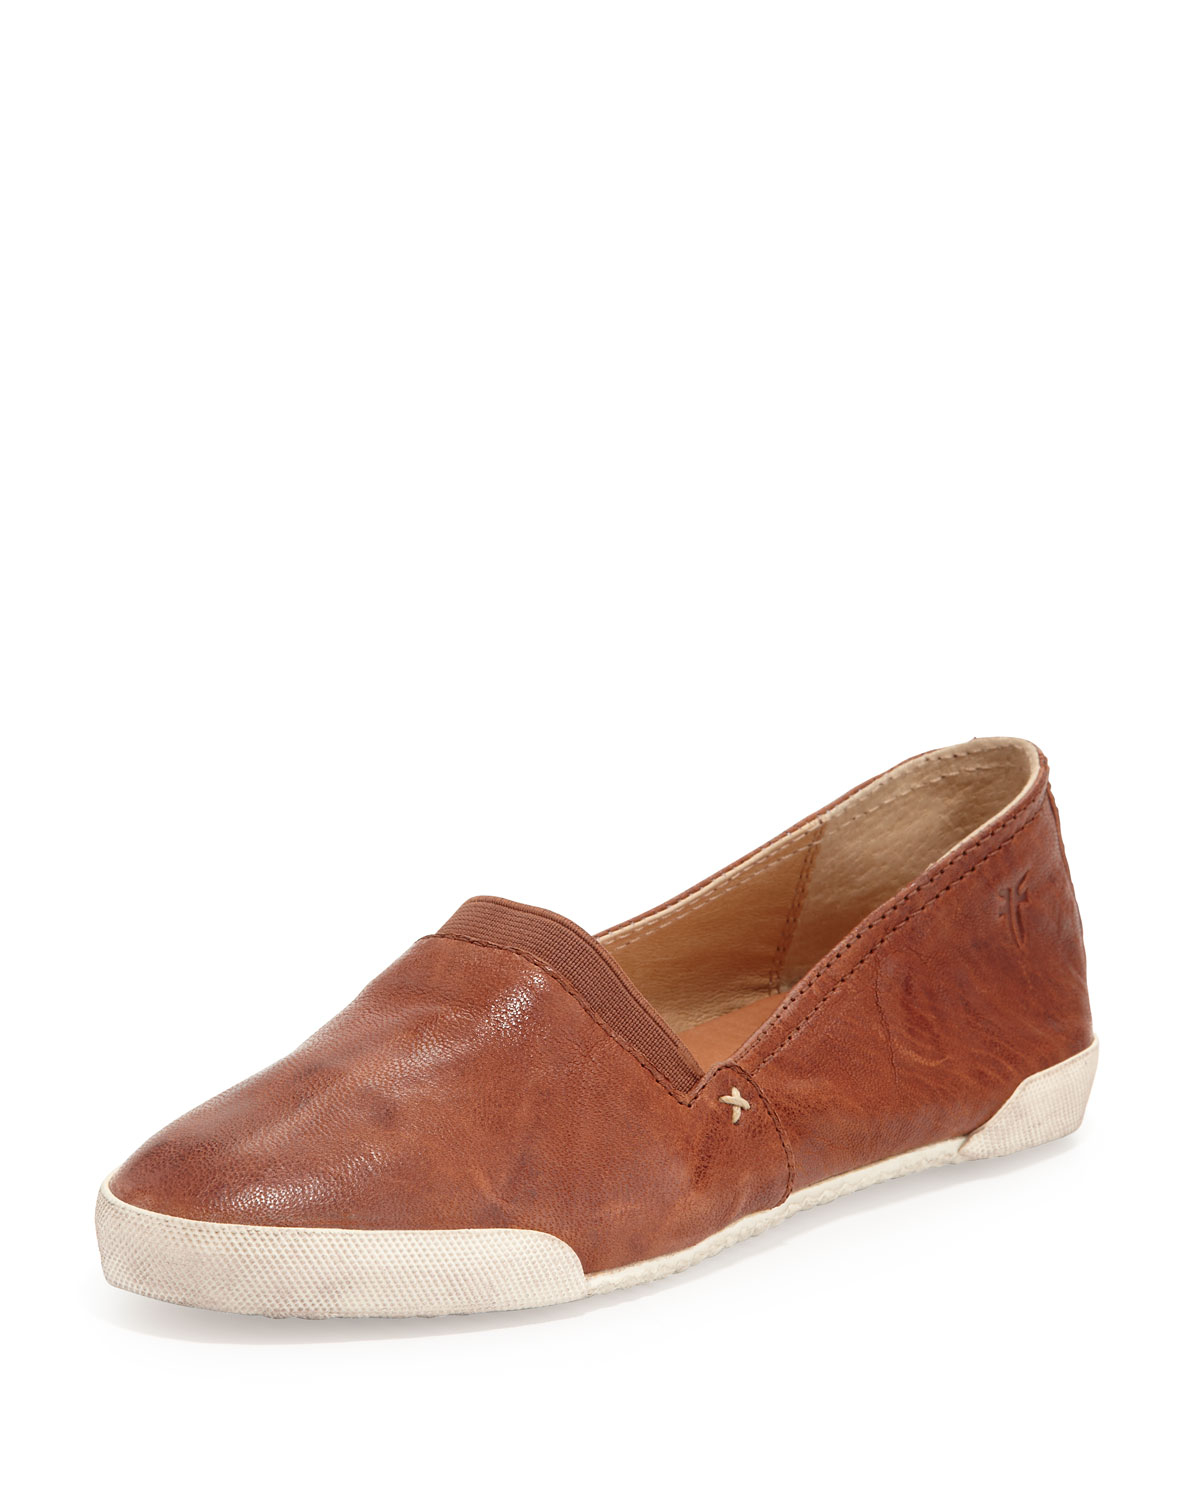 Find great deals on eBay for cognac flats. Shop with confidence.